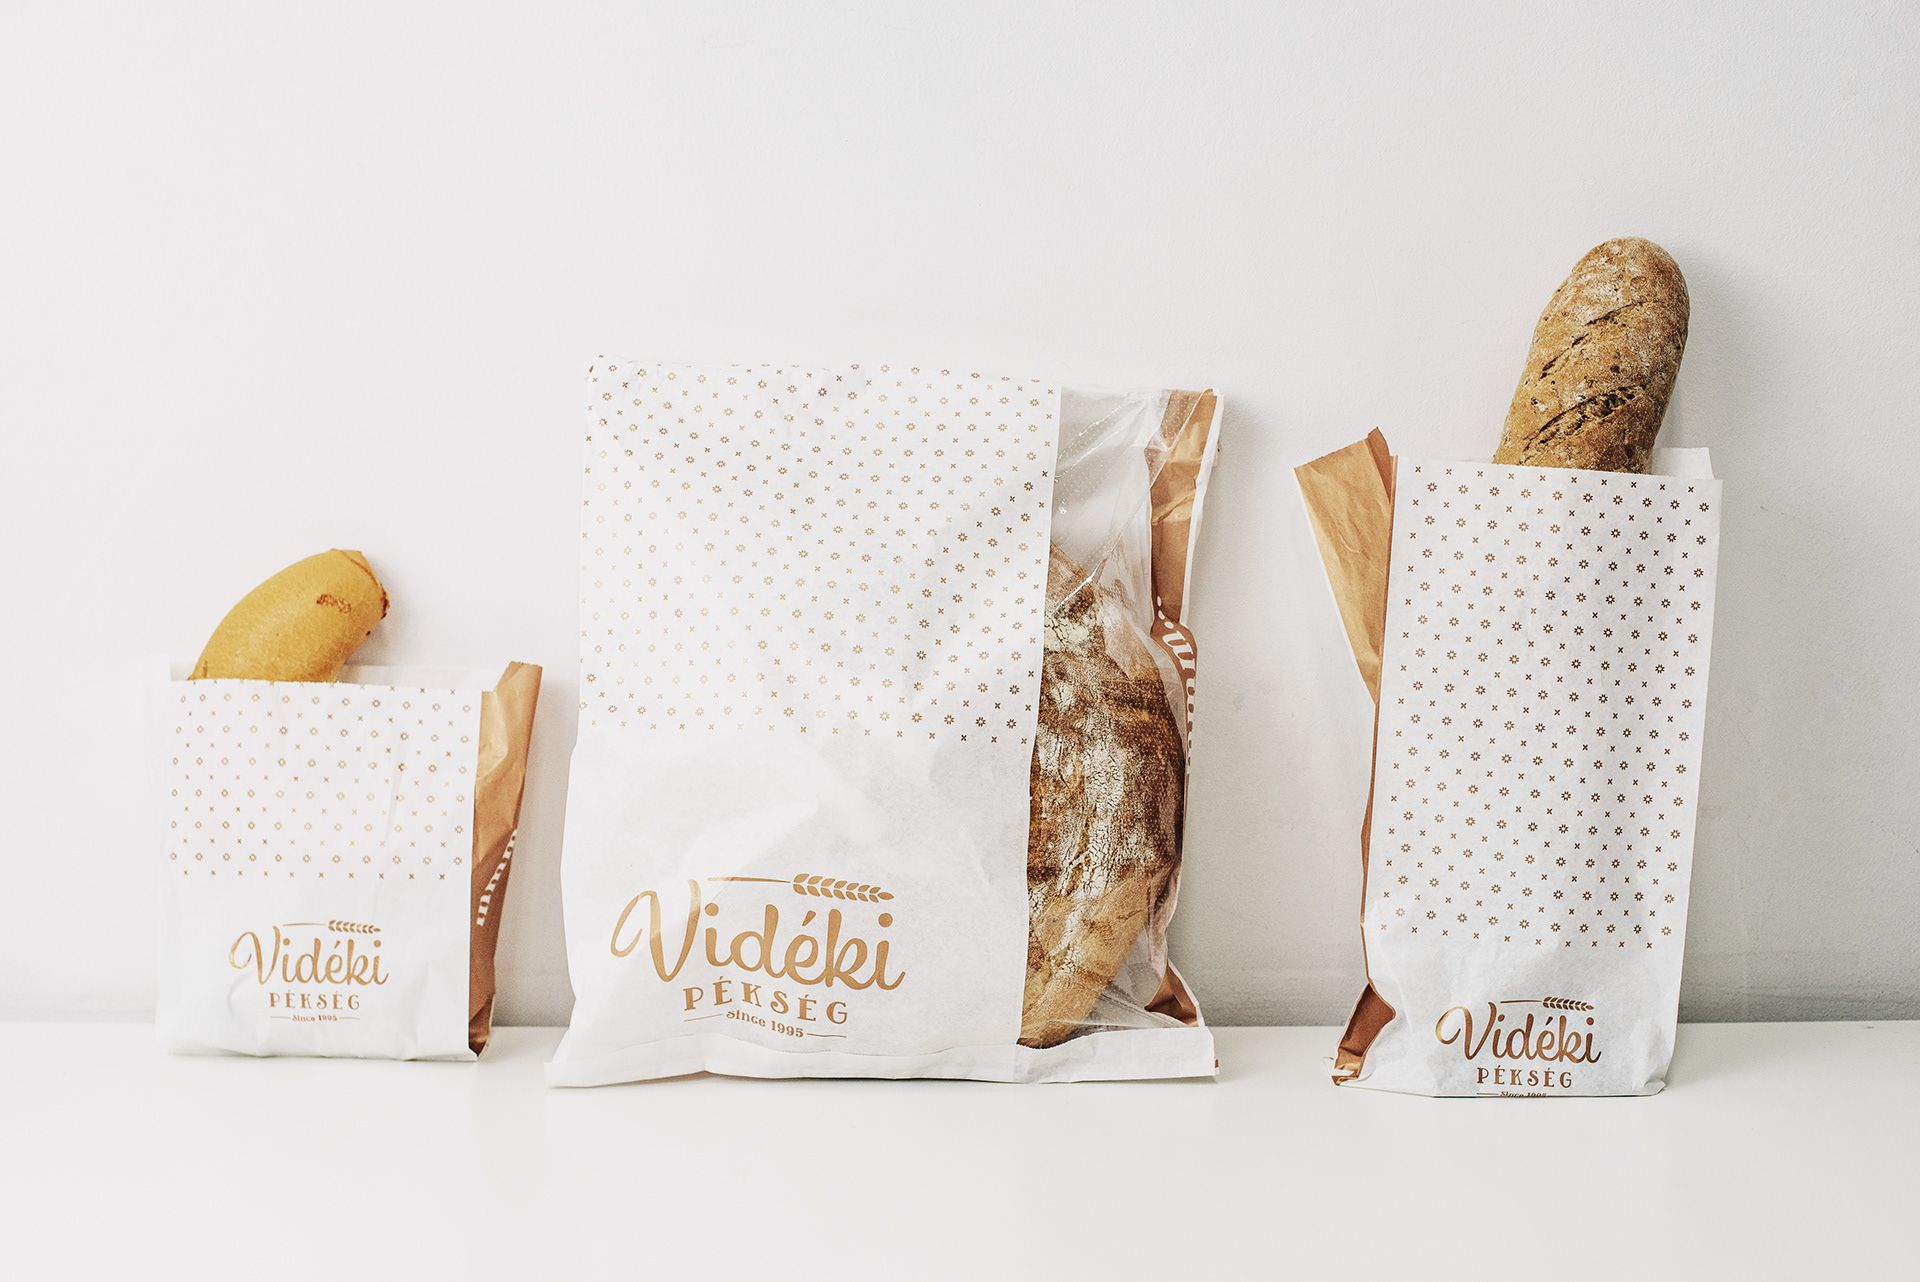 Packaging design for Bakery